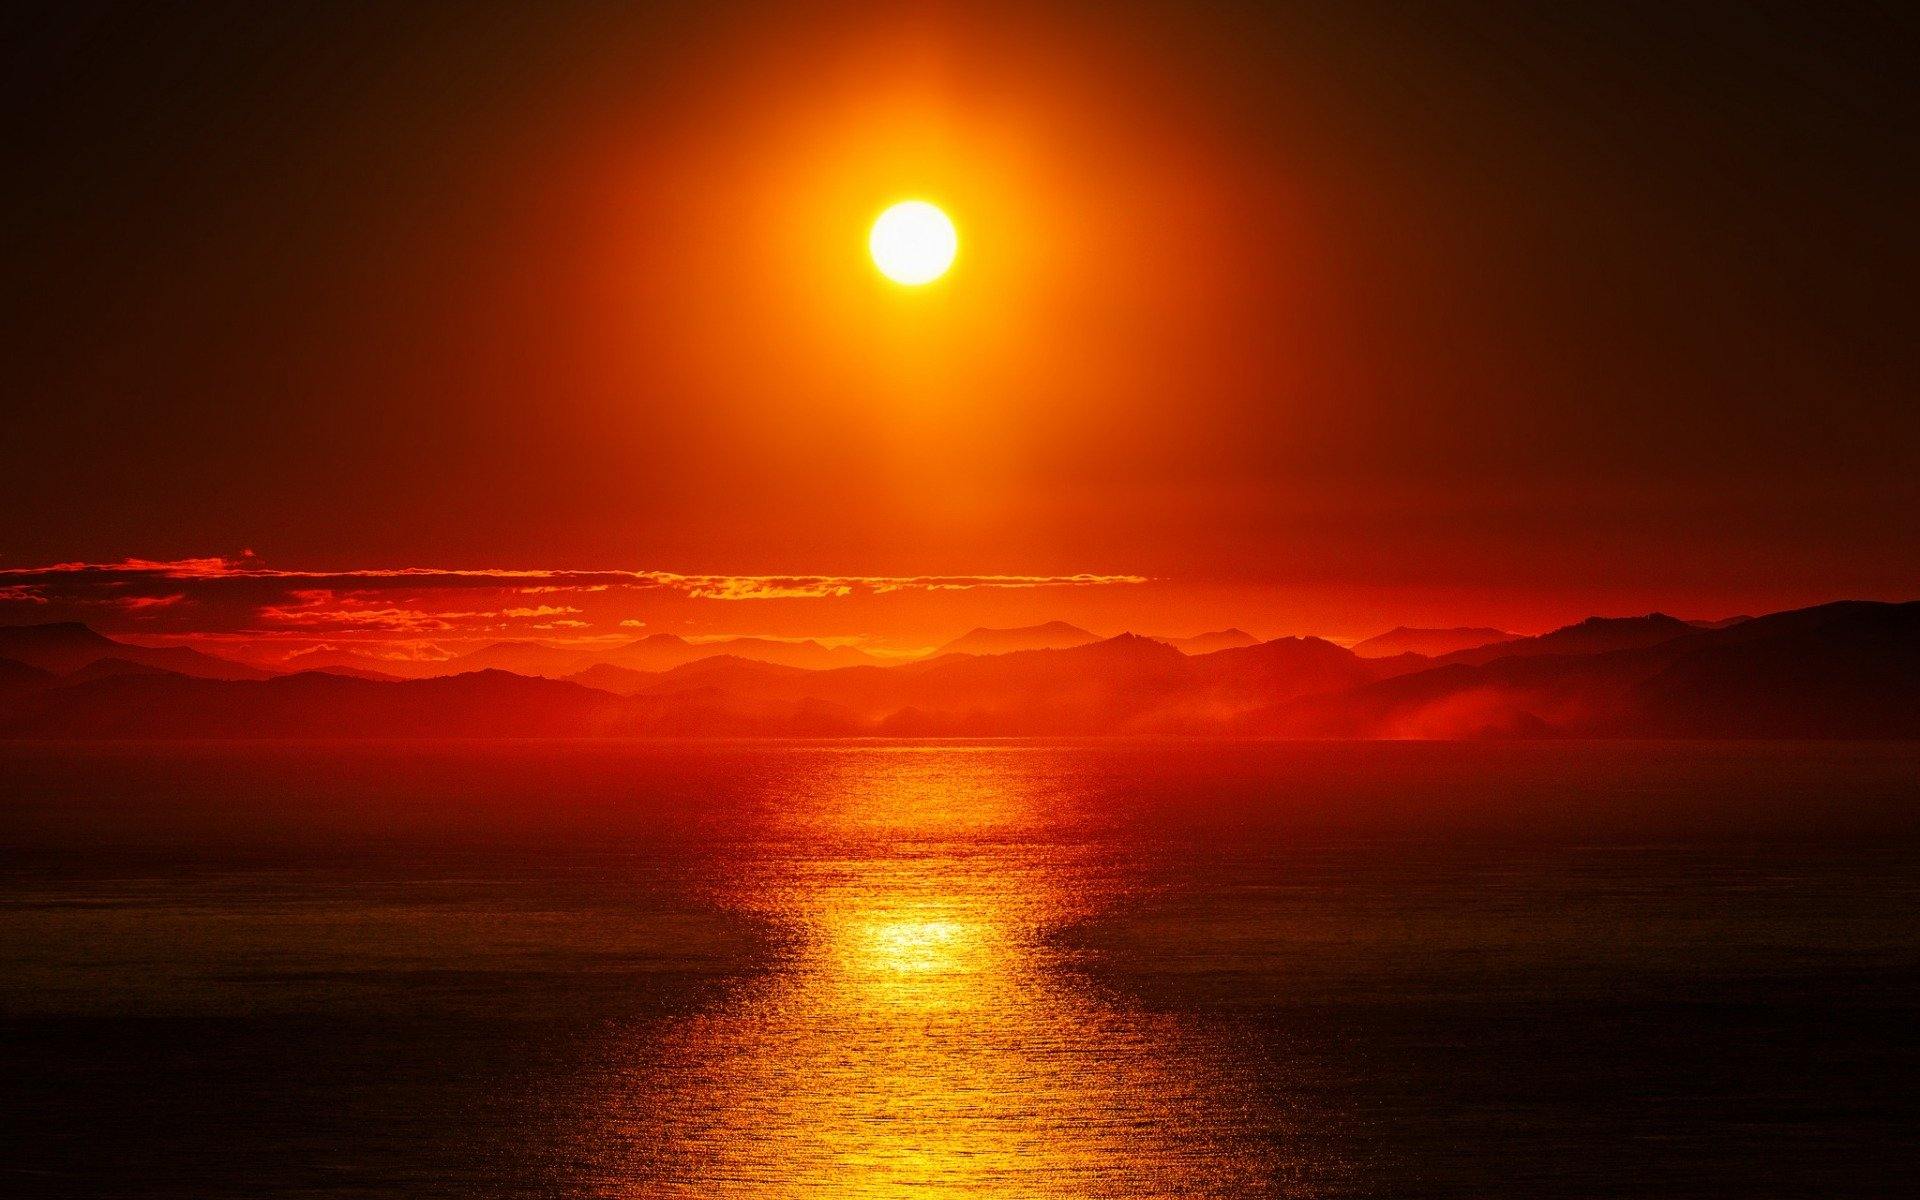 Earth - Sunset  Earth Ocean Reflection Sunbeam Sun Orange Wallpaper